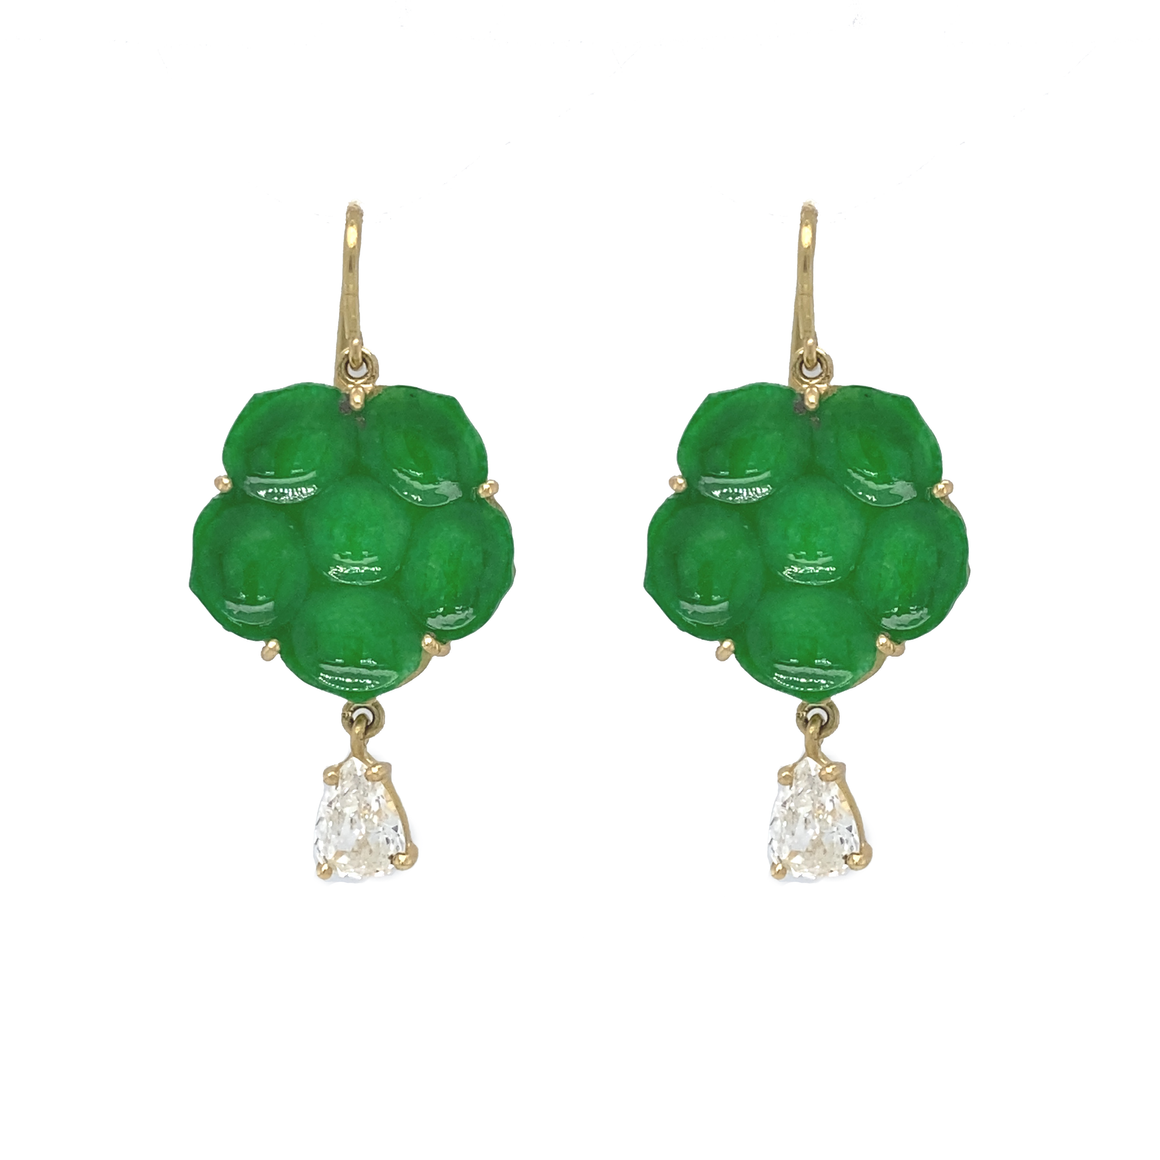 Carved Jade Flower Earrings - Lesley Ann Jewels